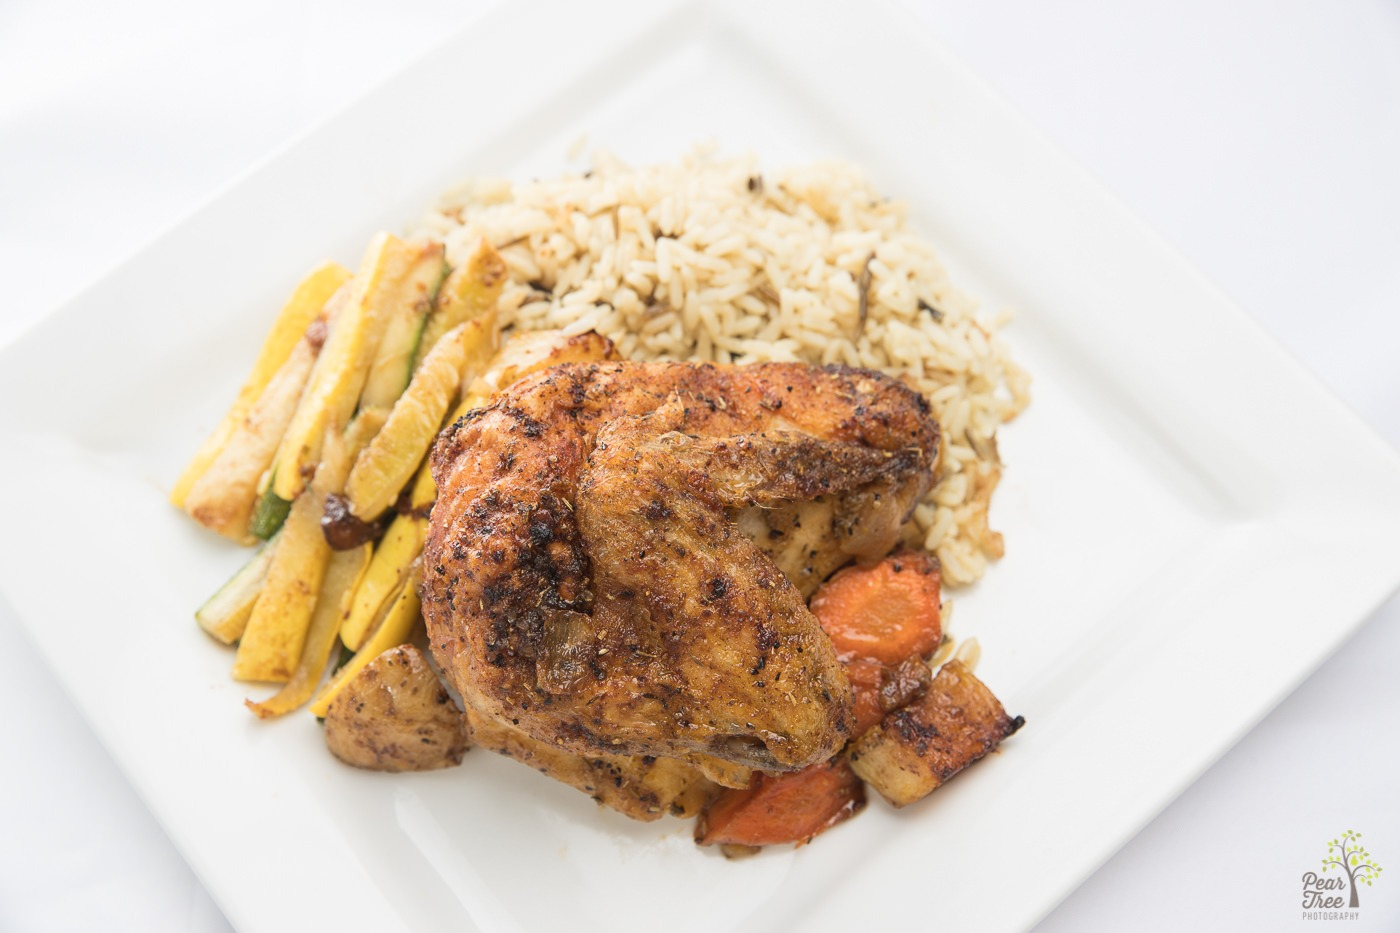 Baked chicken with zucchini, rice pilaf, and sweet carrots catered by Divine Taste of Heaven.